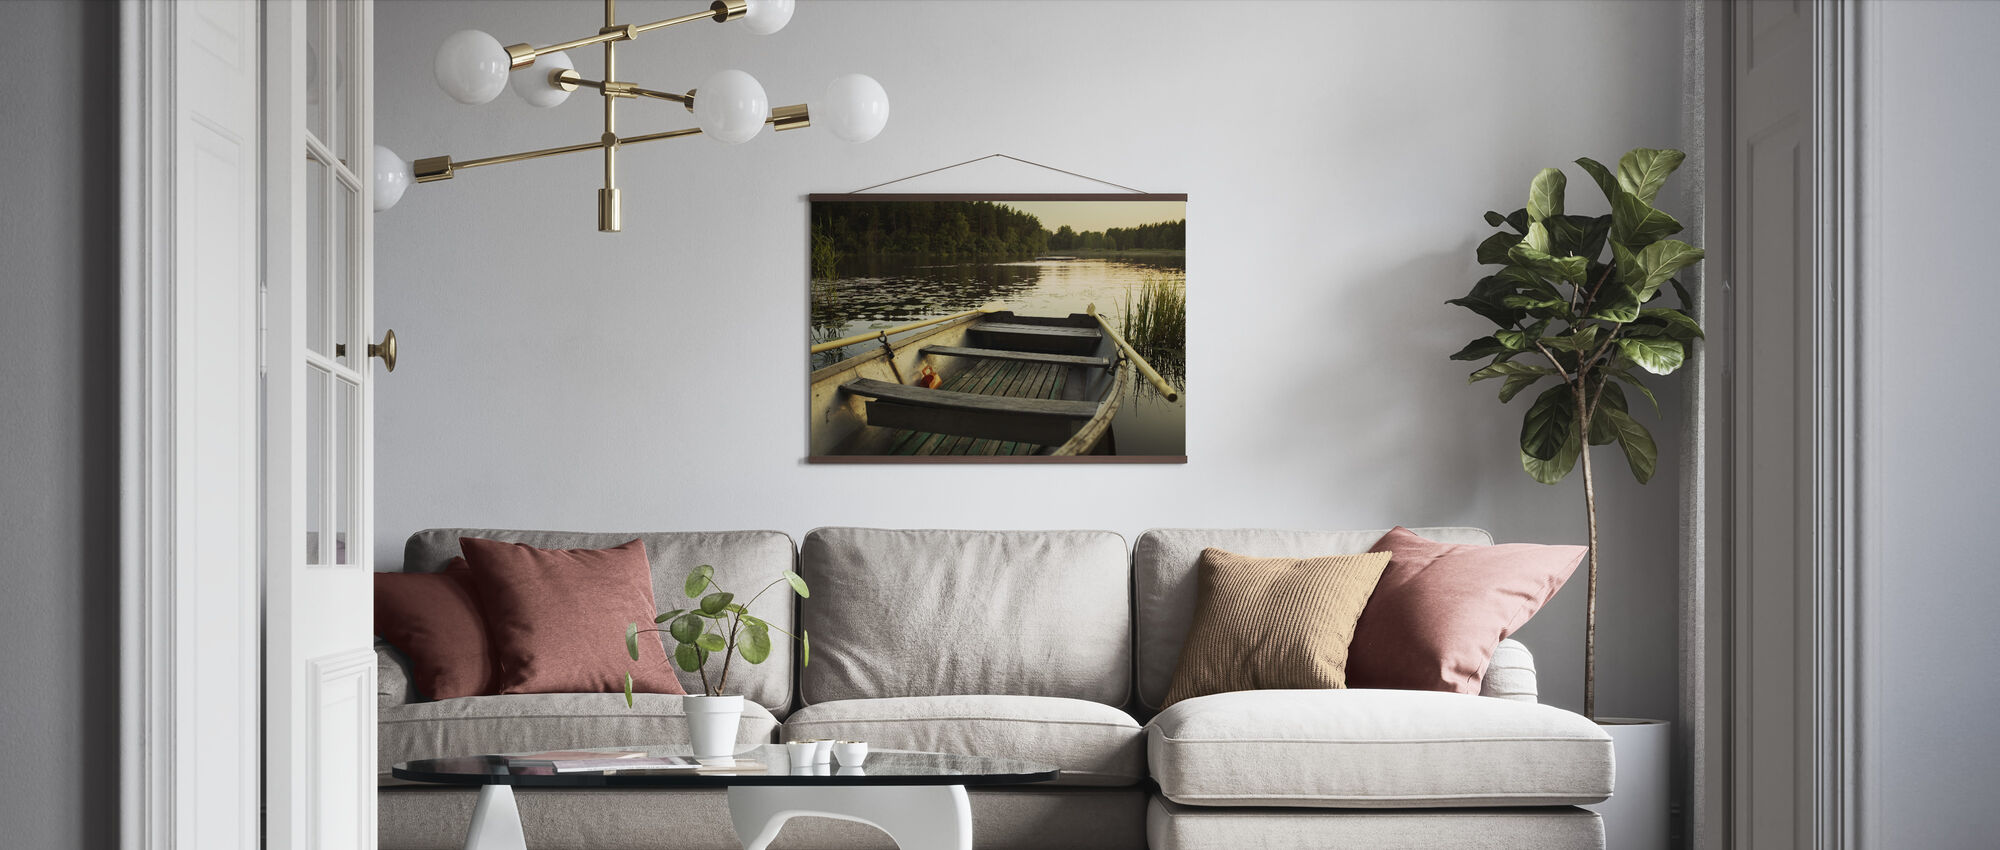 Skiff in Norrtälje, Sweden - Poster - Living Room